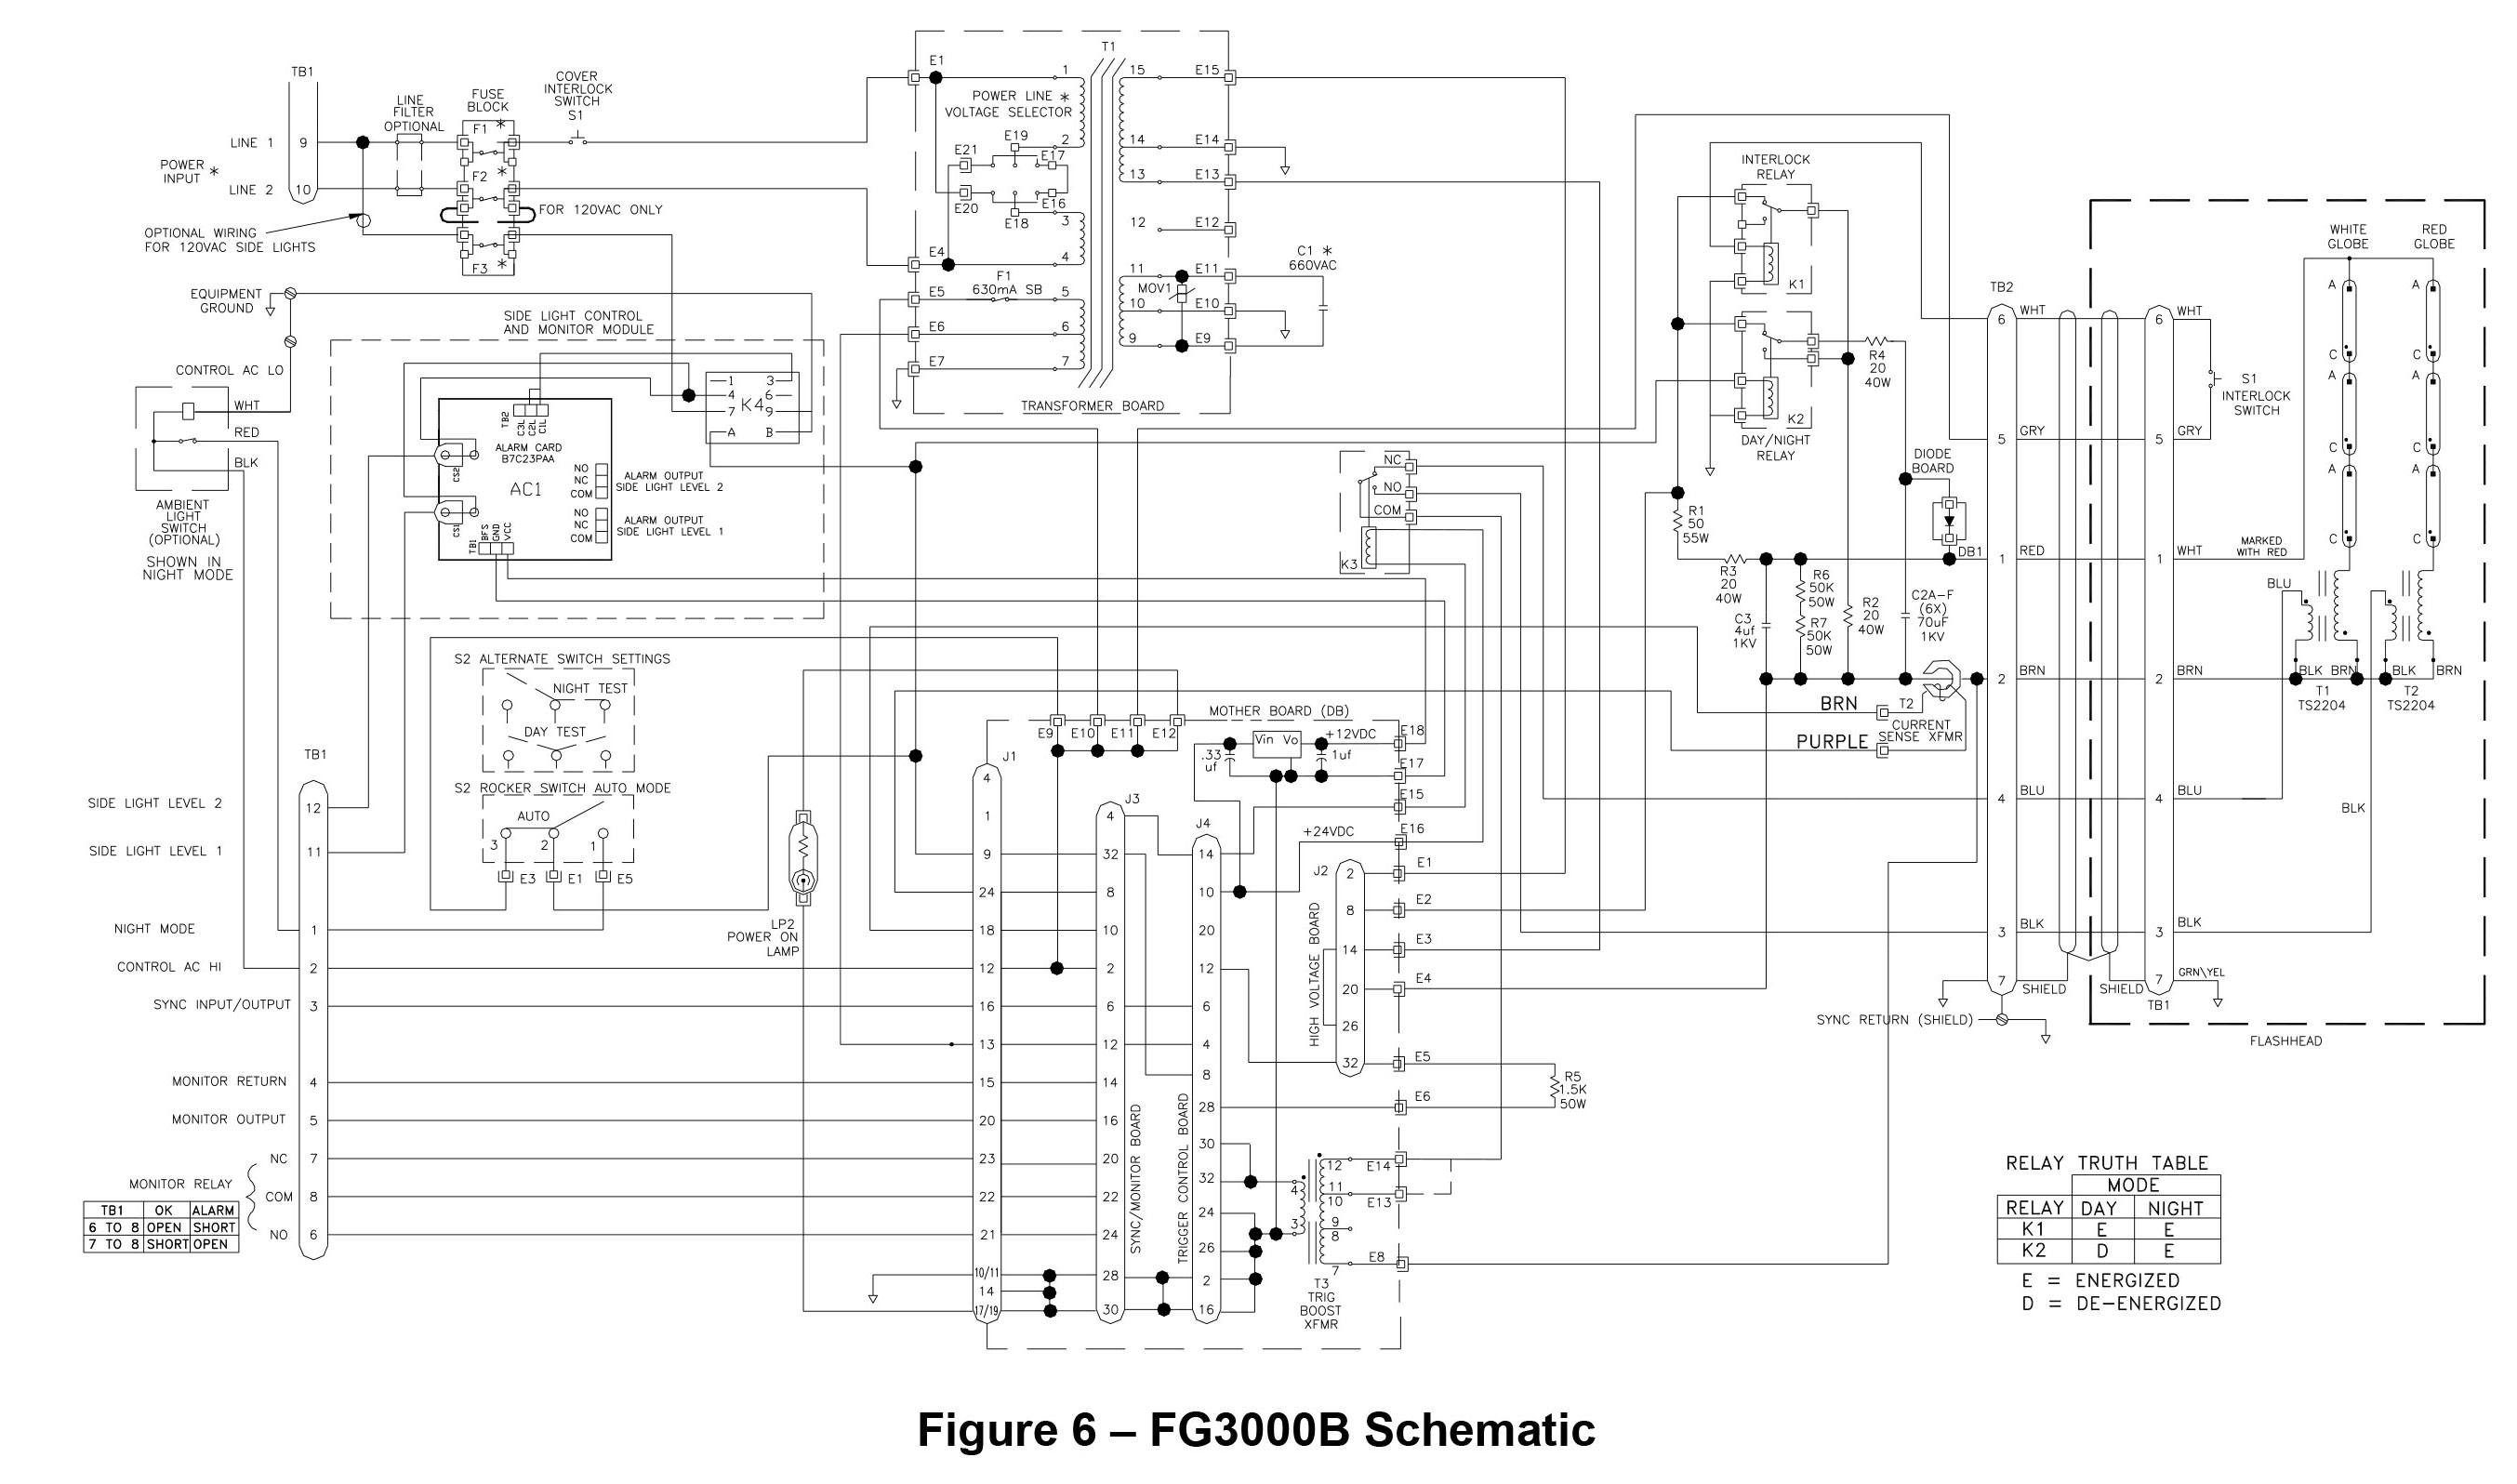 Troubleshooting Guide Fg3000b Dual Medium Intensity Lighting Phillips Wiring Diagrams Figure 6 Schematic